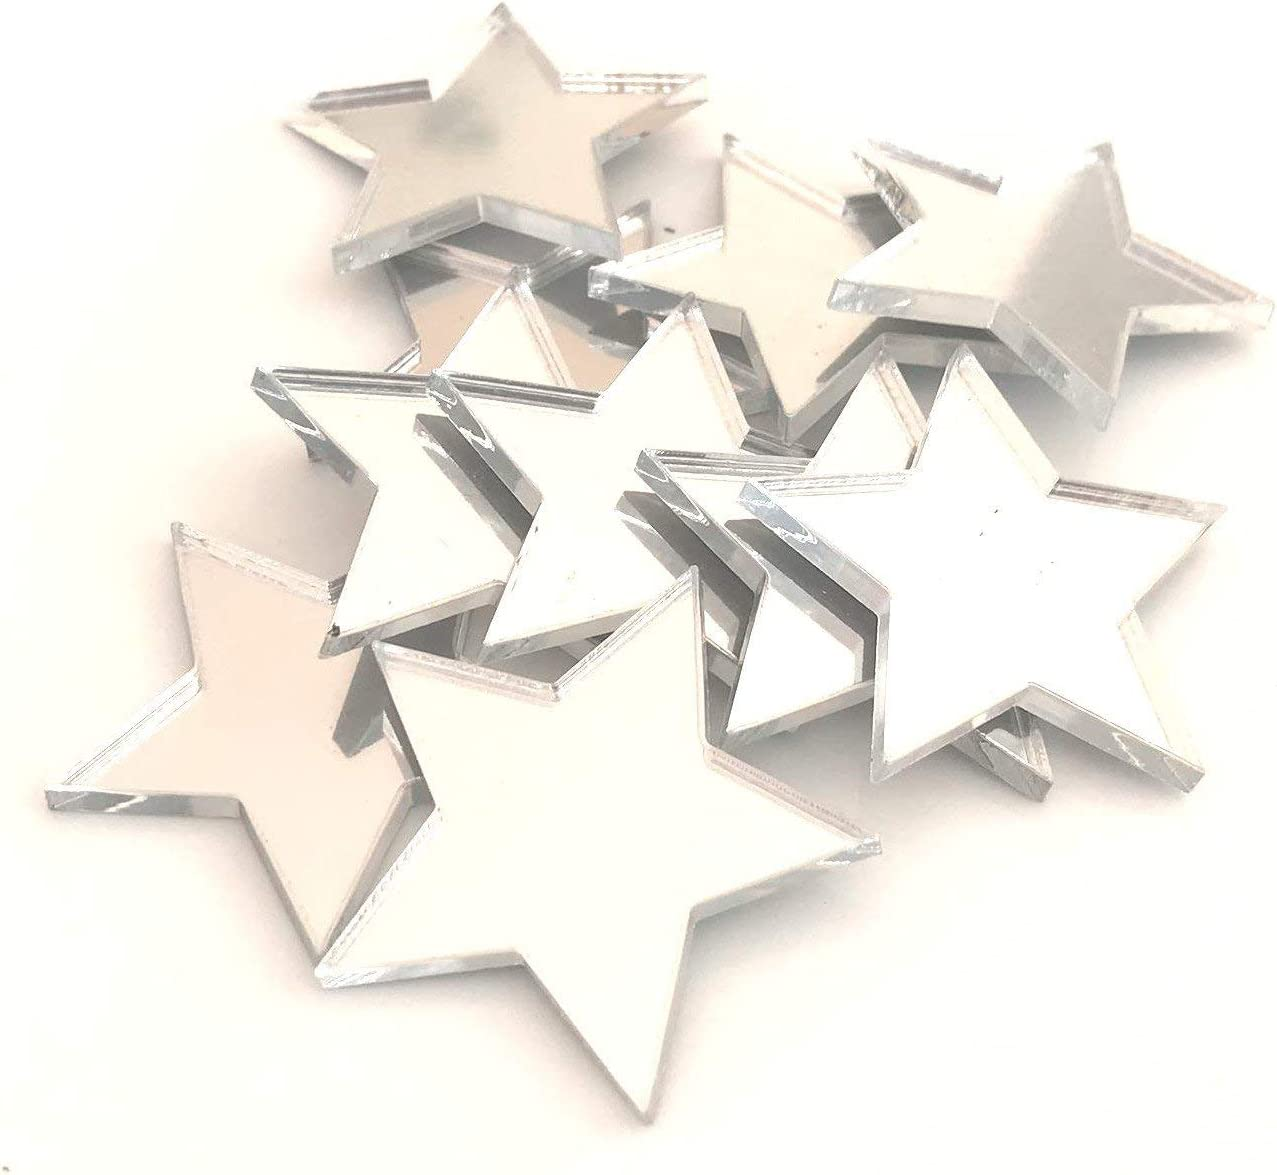 Super Cool Creations Star Shaped Crafting Mirrors Trust 10 Ma of Set Limited price sale